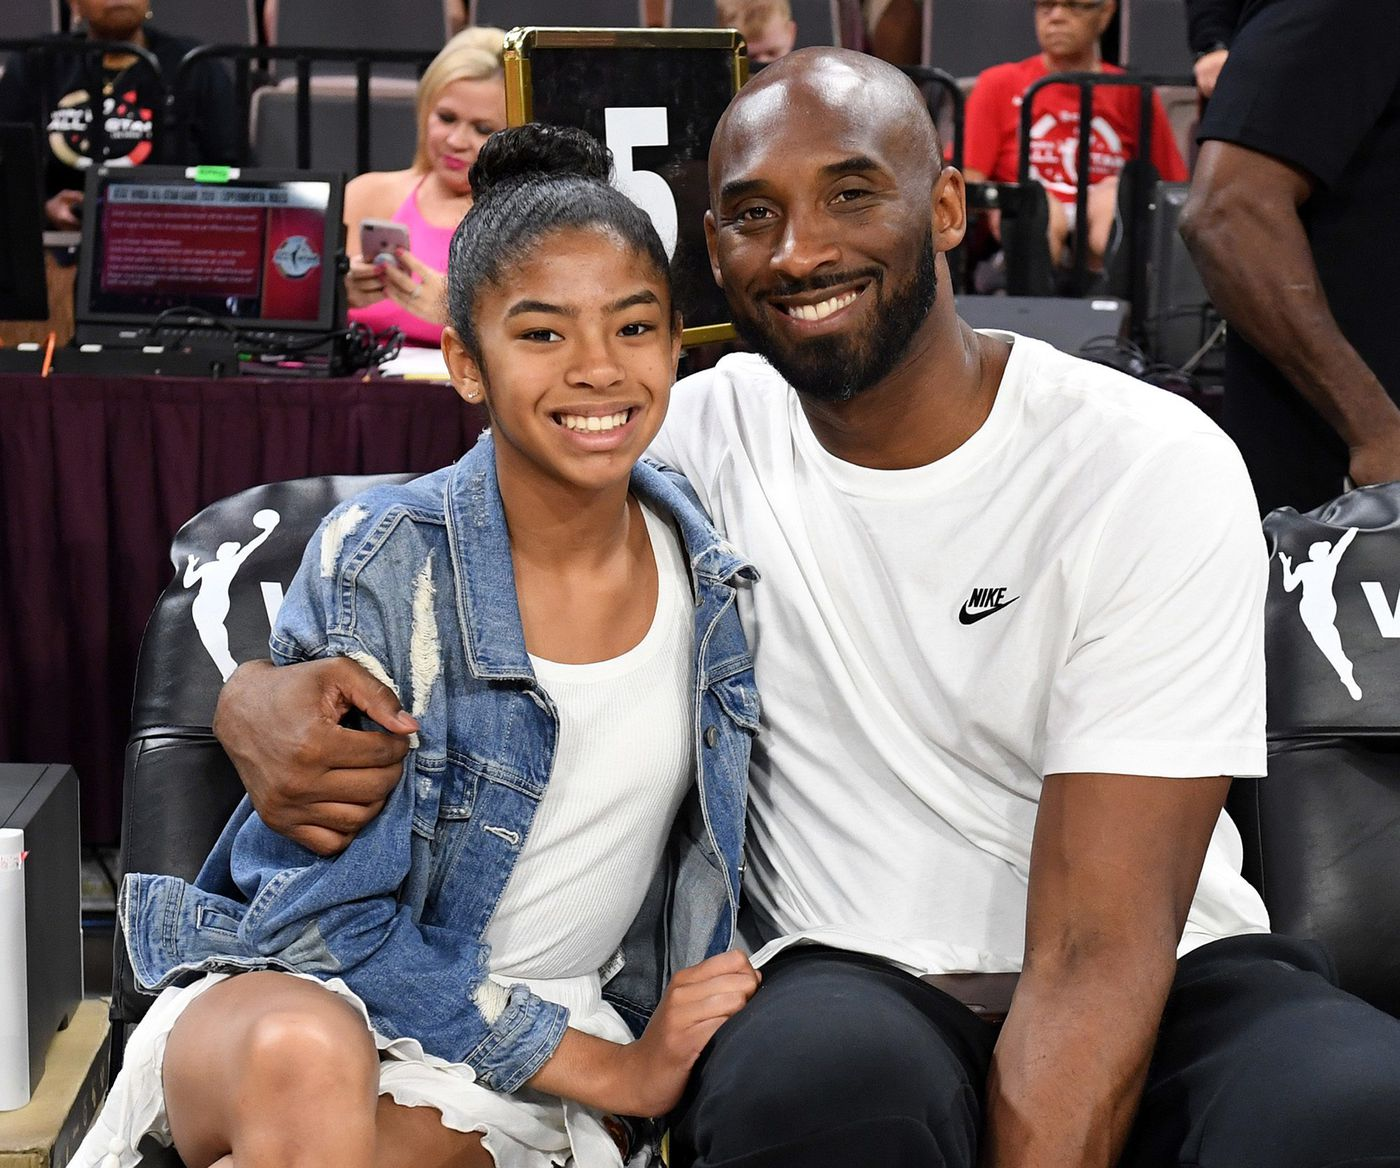 Gianna Bryant and her father, former NBA player Kobe Bryant, attend the WNBA All-Star Game 2019 at the Mandalay Bay Events Center on July 27, 2019 in Las Vegas.